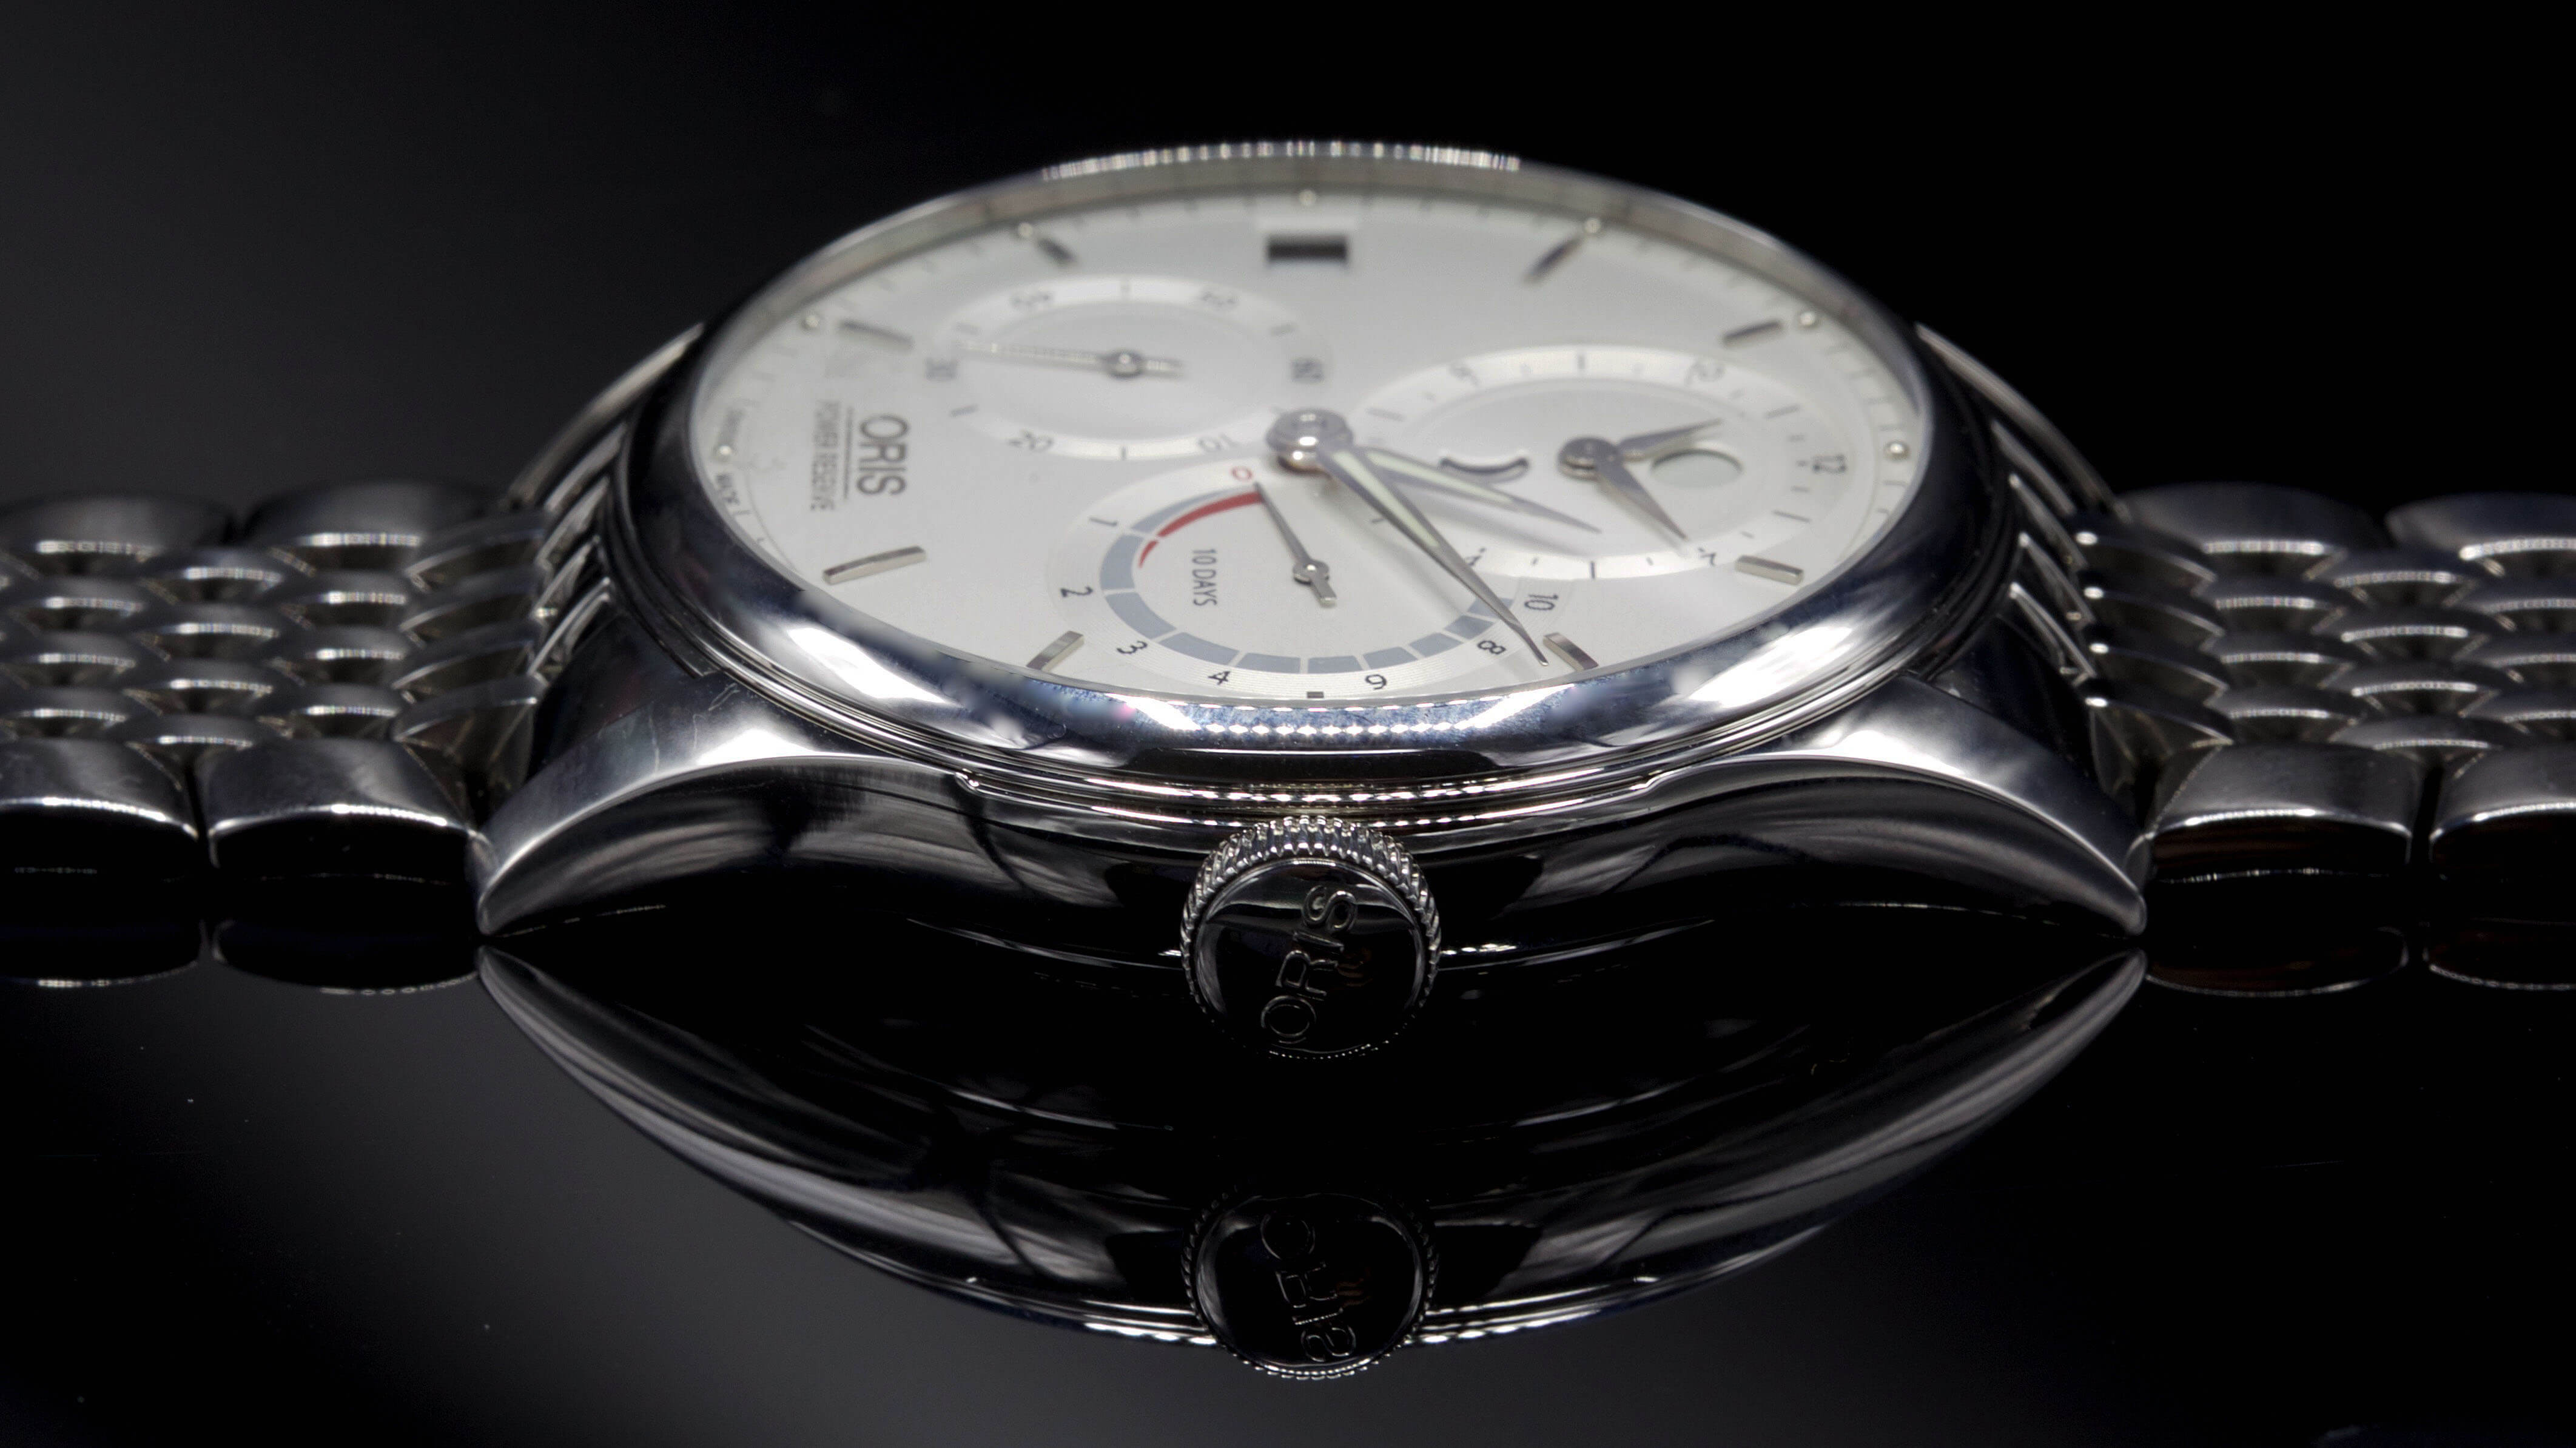 Oris_Artelier_Calibre_112_caseband1 - ESCAPEMENT MAGAZINE - watch reviews by Angus Davies